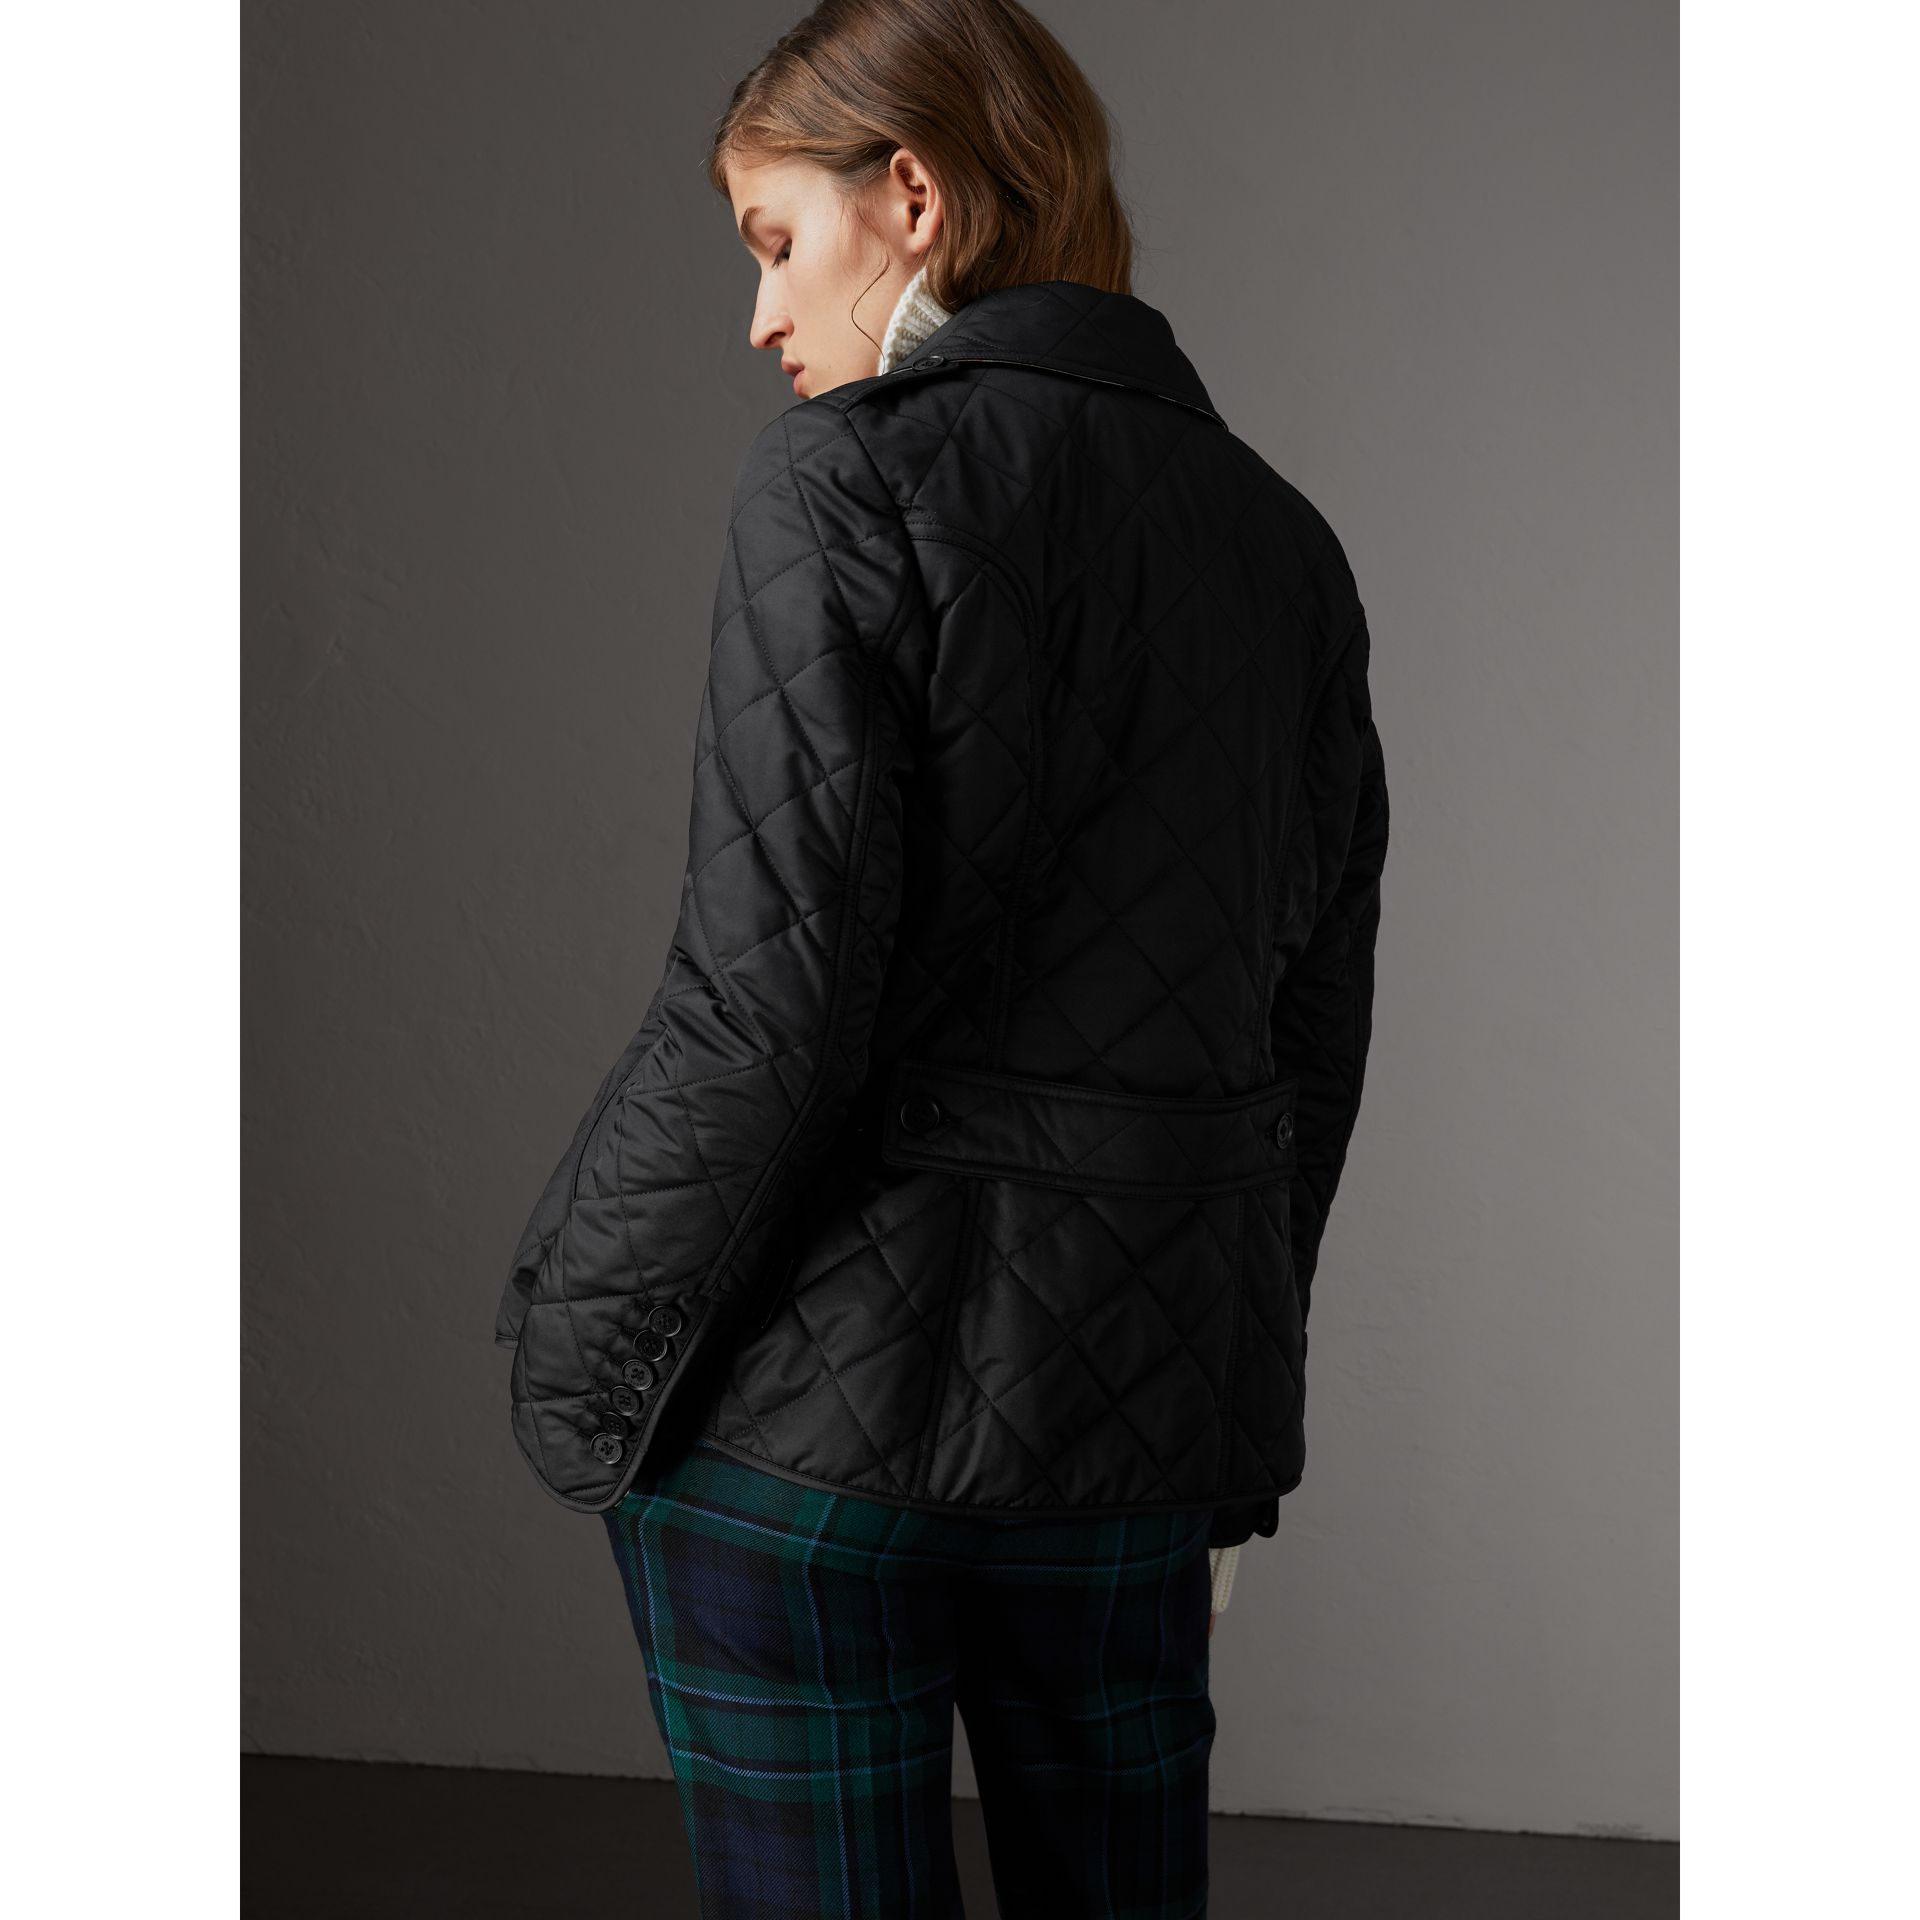 Diamond Quilted Jacket in Black - Women | Burberry Australia - gallery image 2